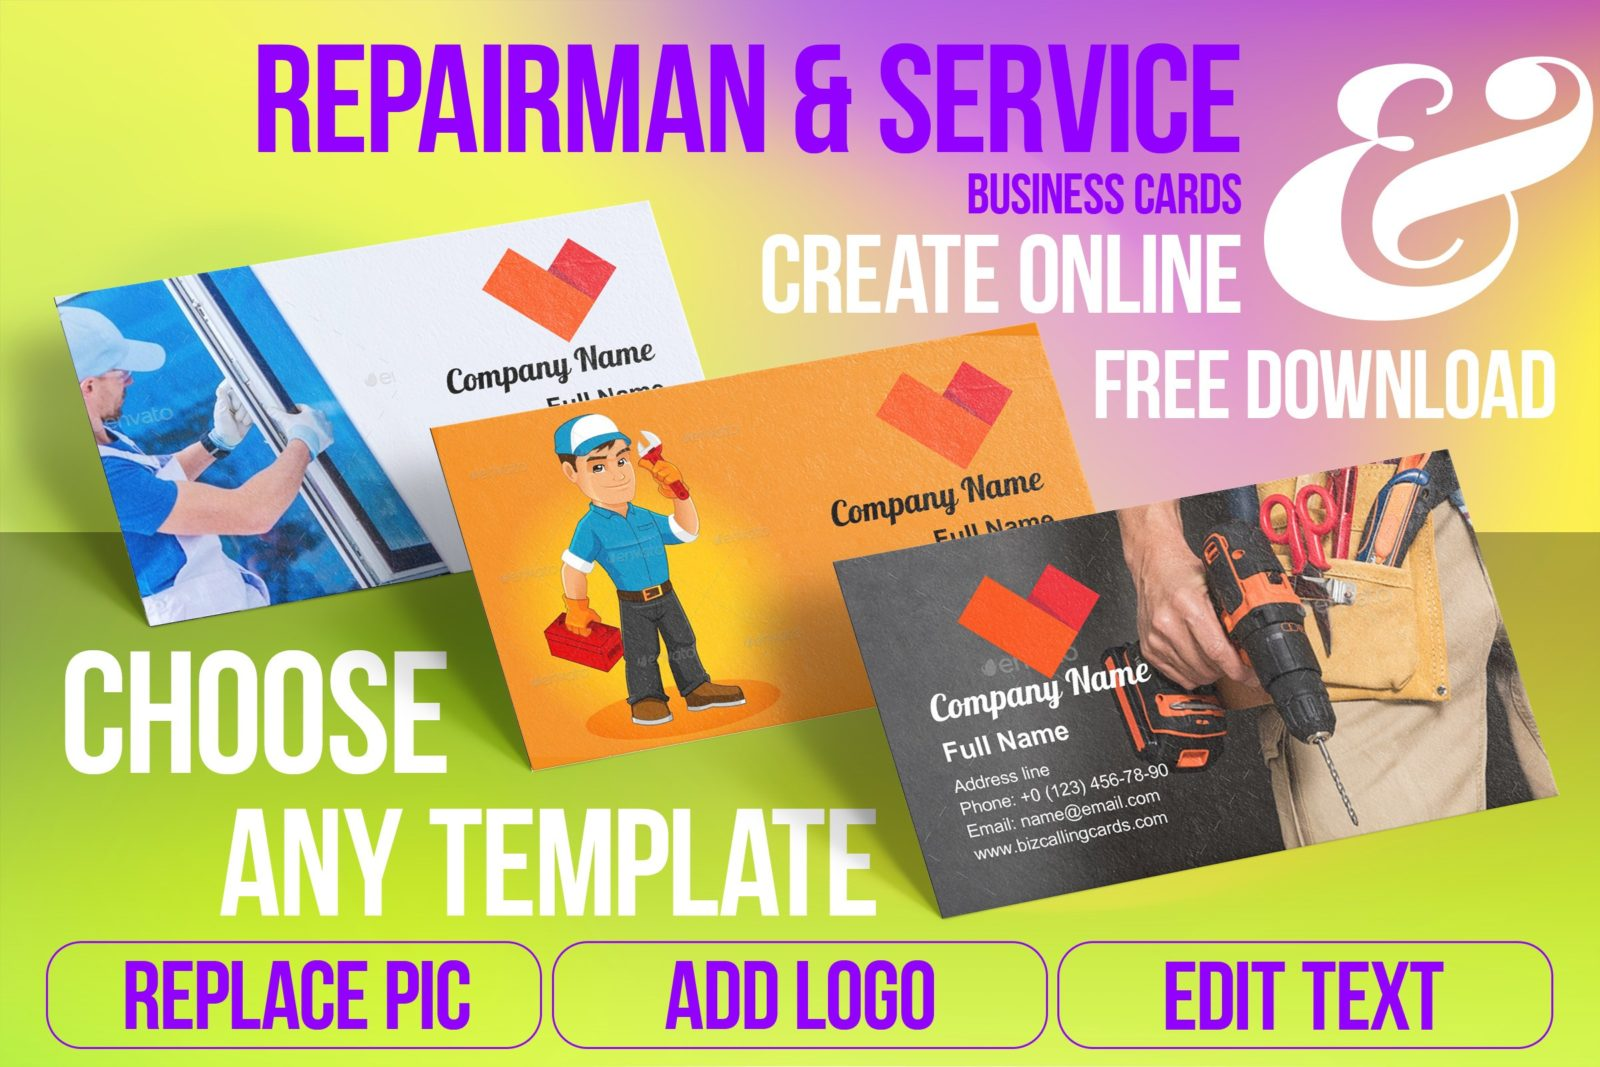 Business Card Templates For Repairman & Service Free Download